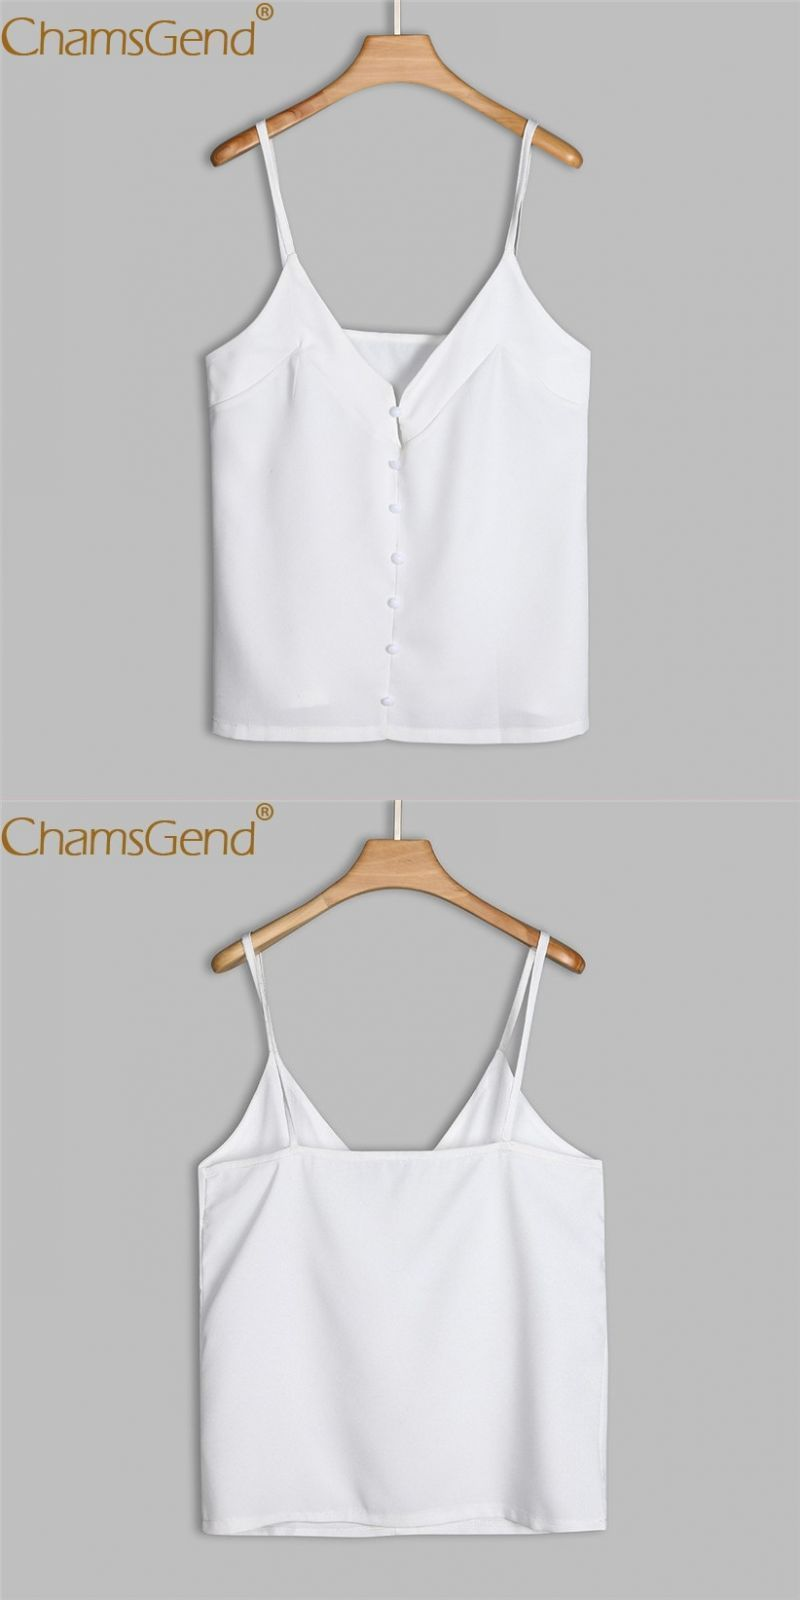 cc3806beb73d8 Shirt women sexy white v neck chiffon camis ol basic blouse tops 80320   polyester